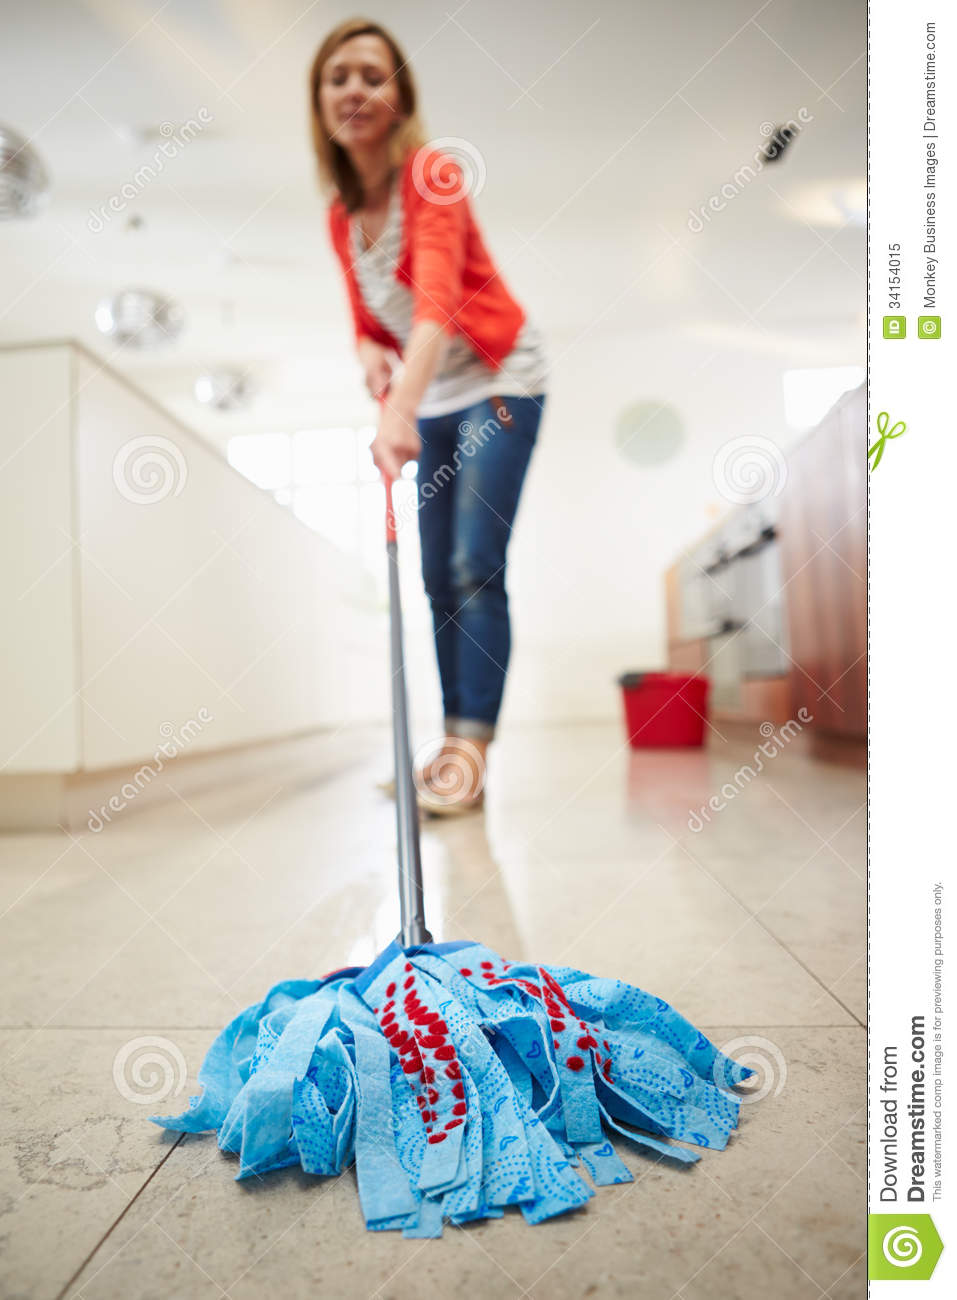 Kitchen Floor Cleaners Woman Mopping Kitchen Floor Royalty Free Stock Photo Image 34154015